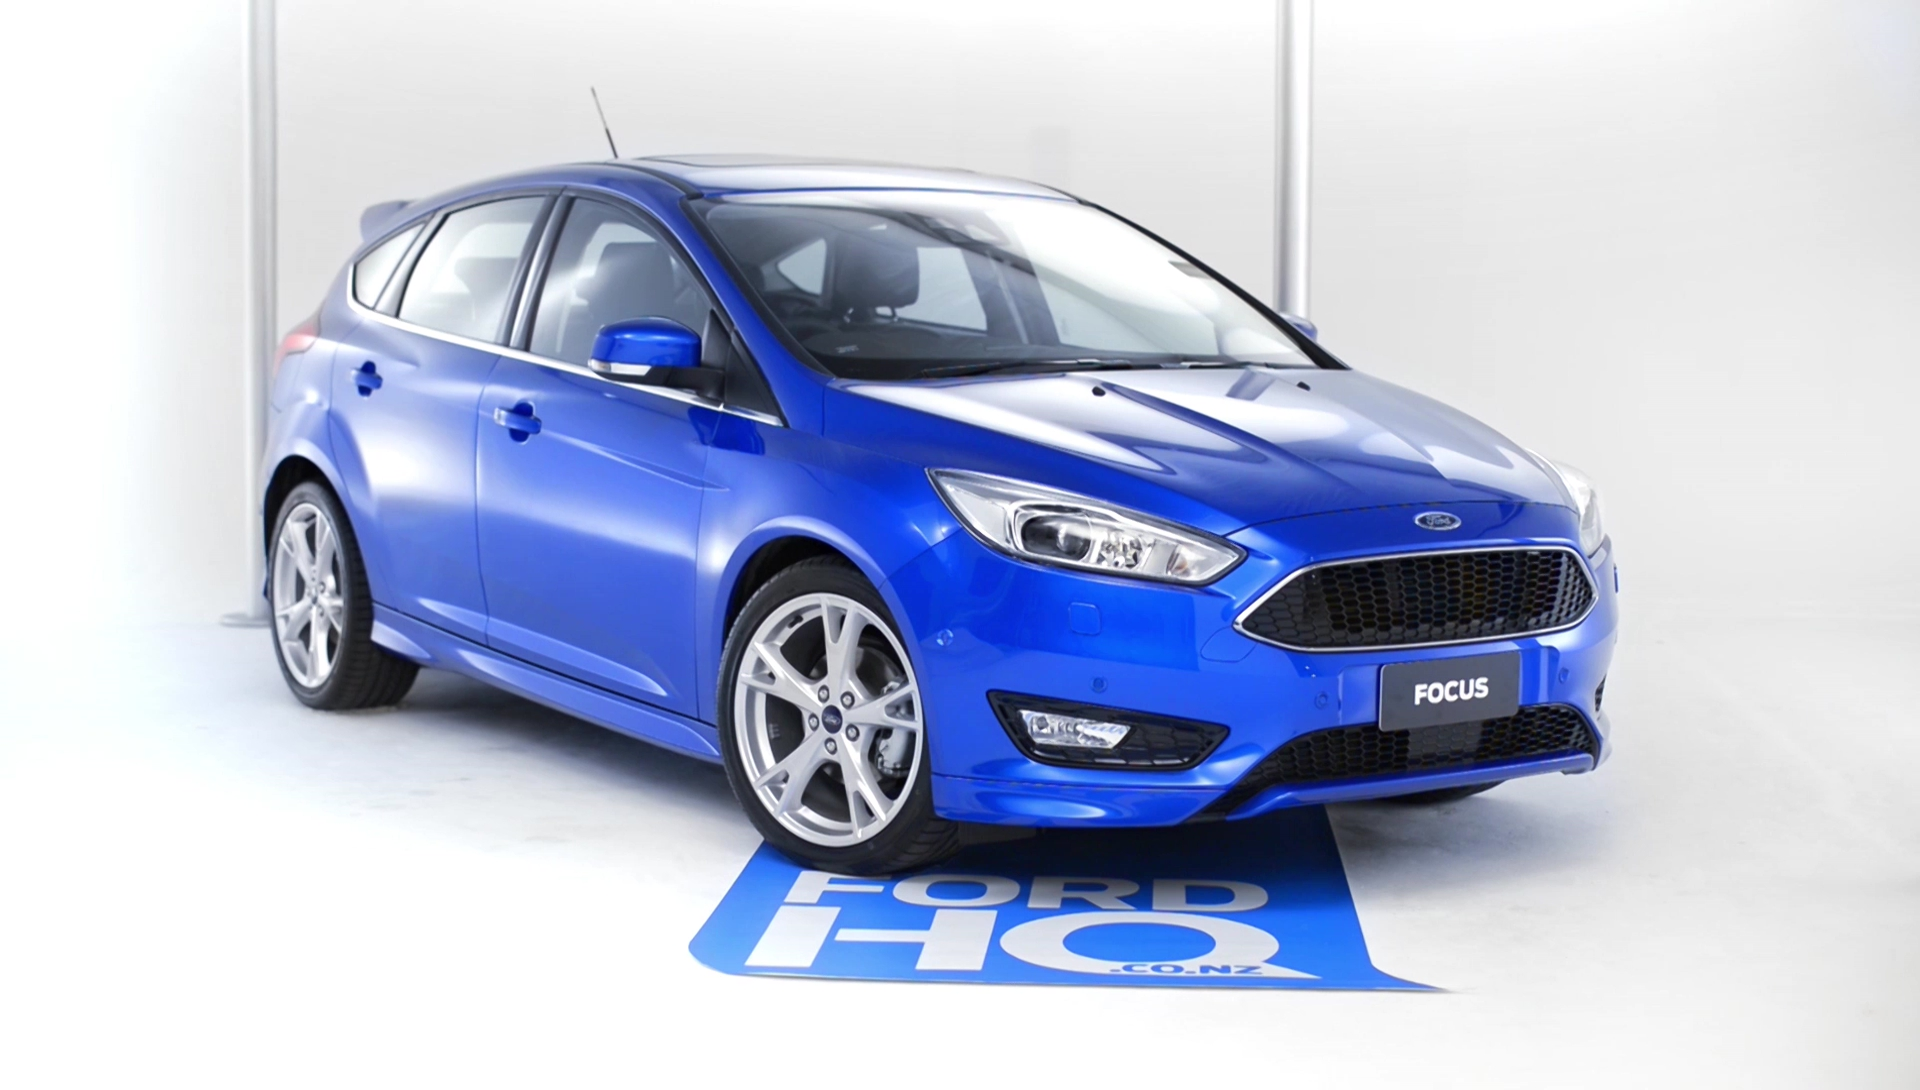 Ford focus, car studio